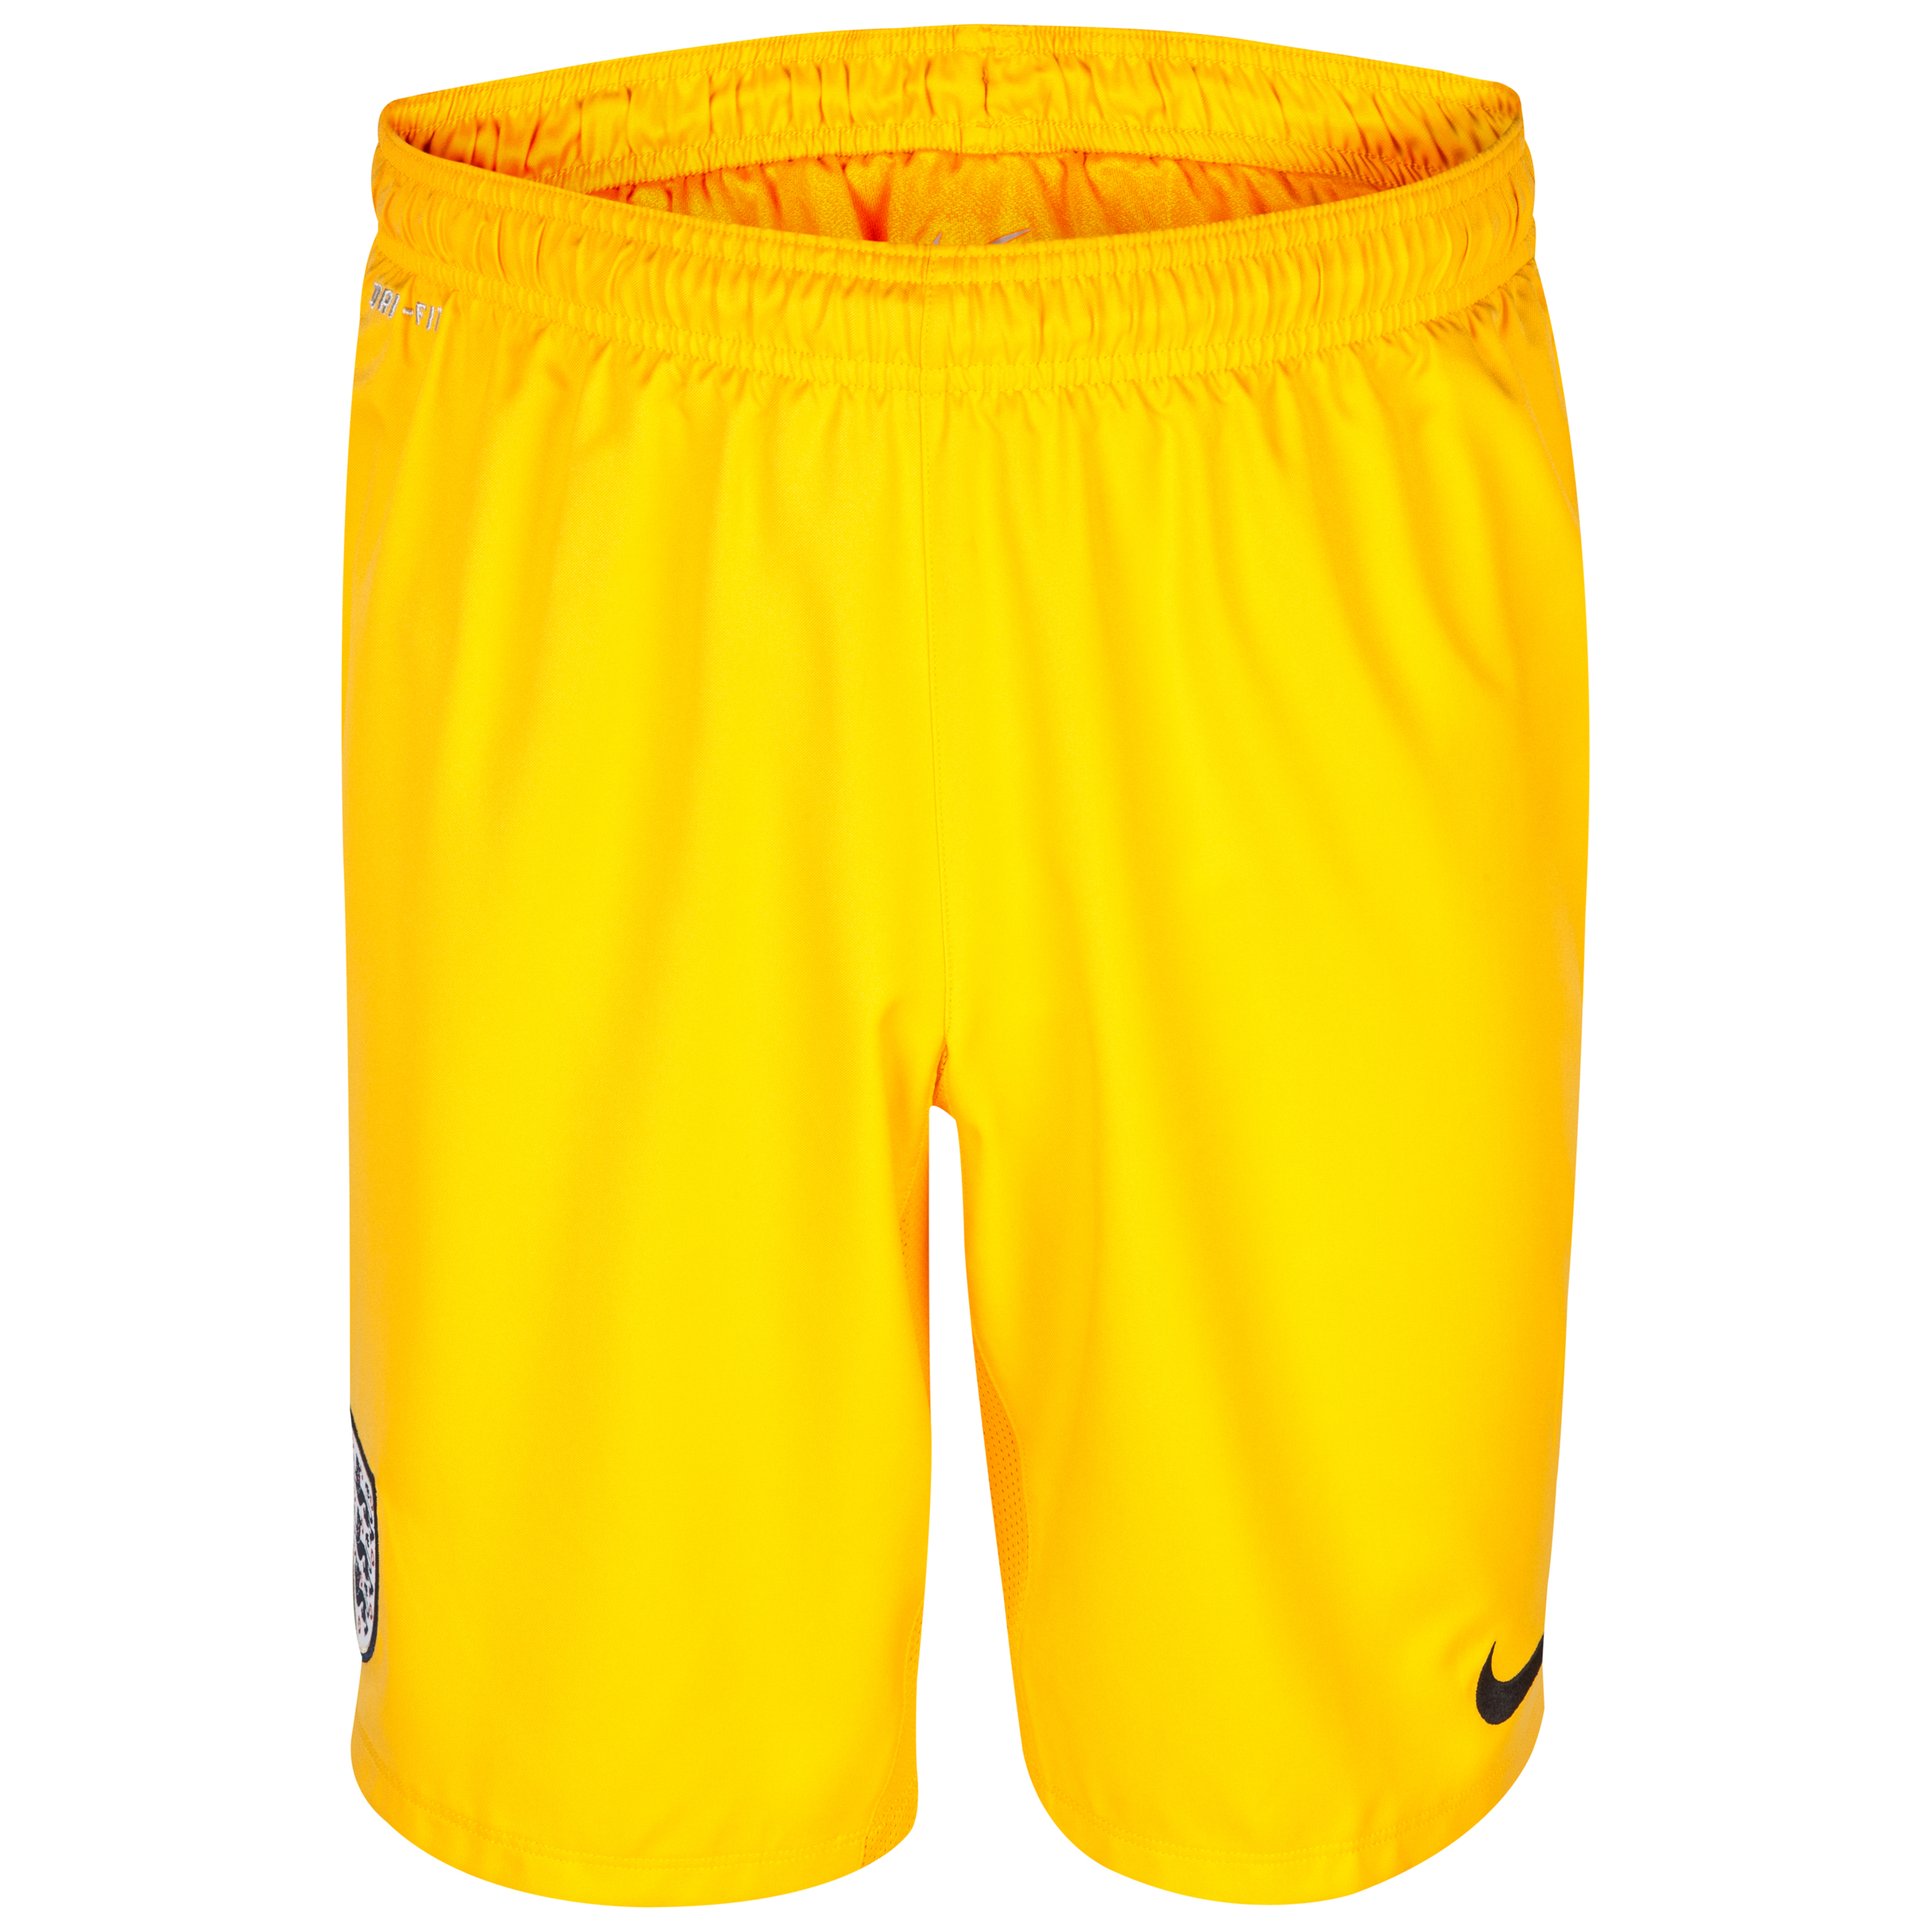 England Away Goalkeeper Short 2013/14 Gold